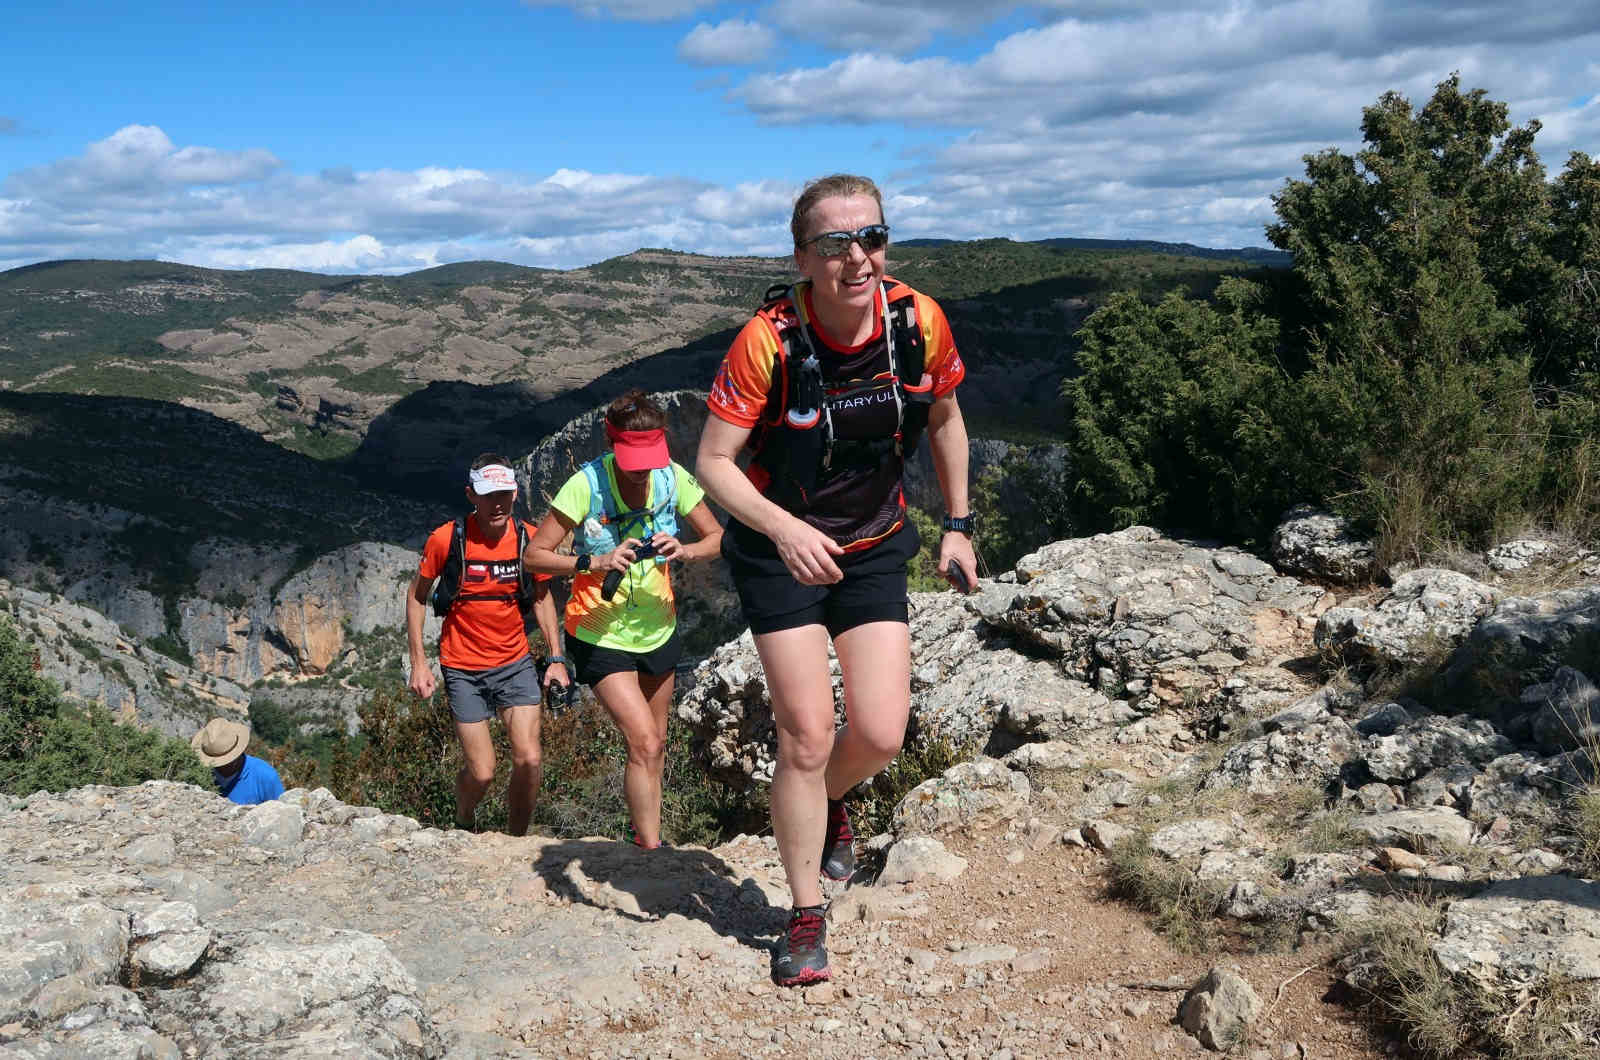 Four trail runners ascend a pathway emerging at the top of the plateau in the Spanish Pyrenees on our Trail Running Holiday